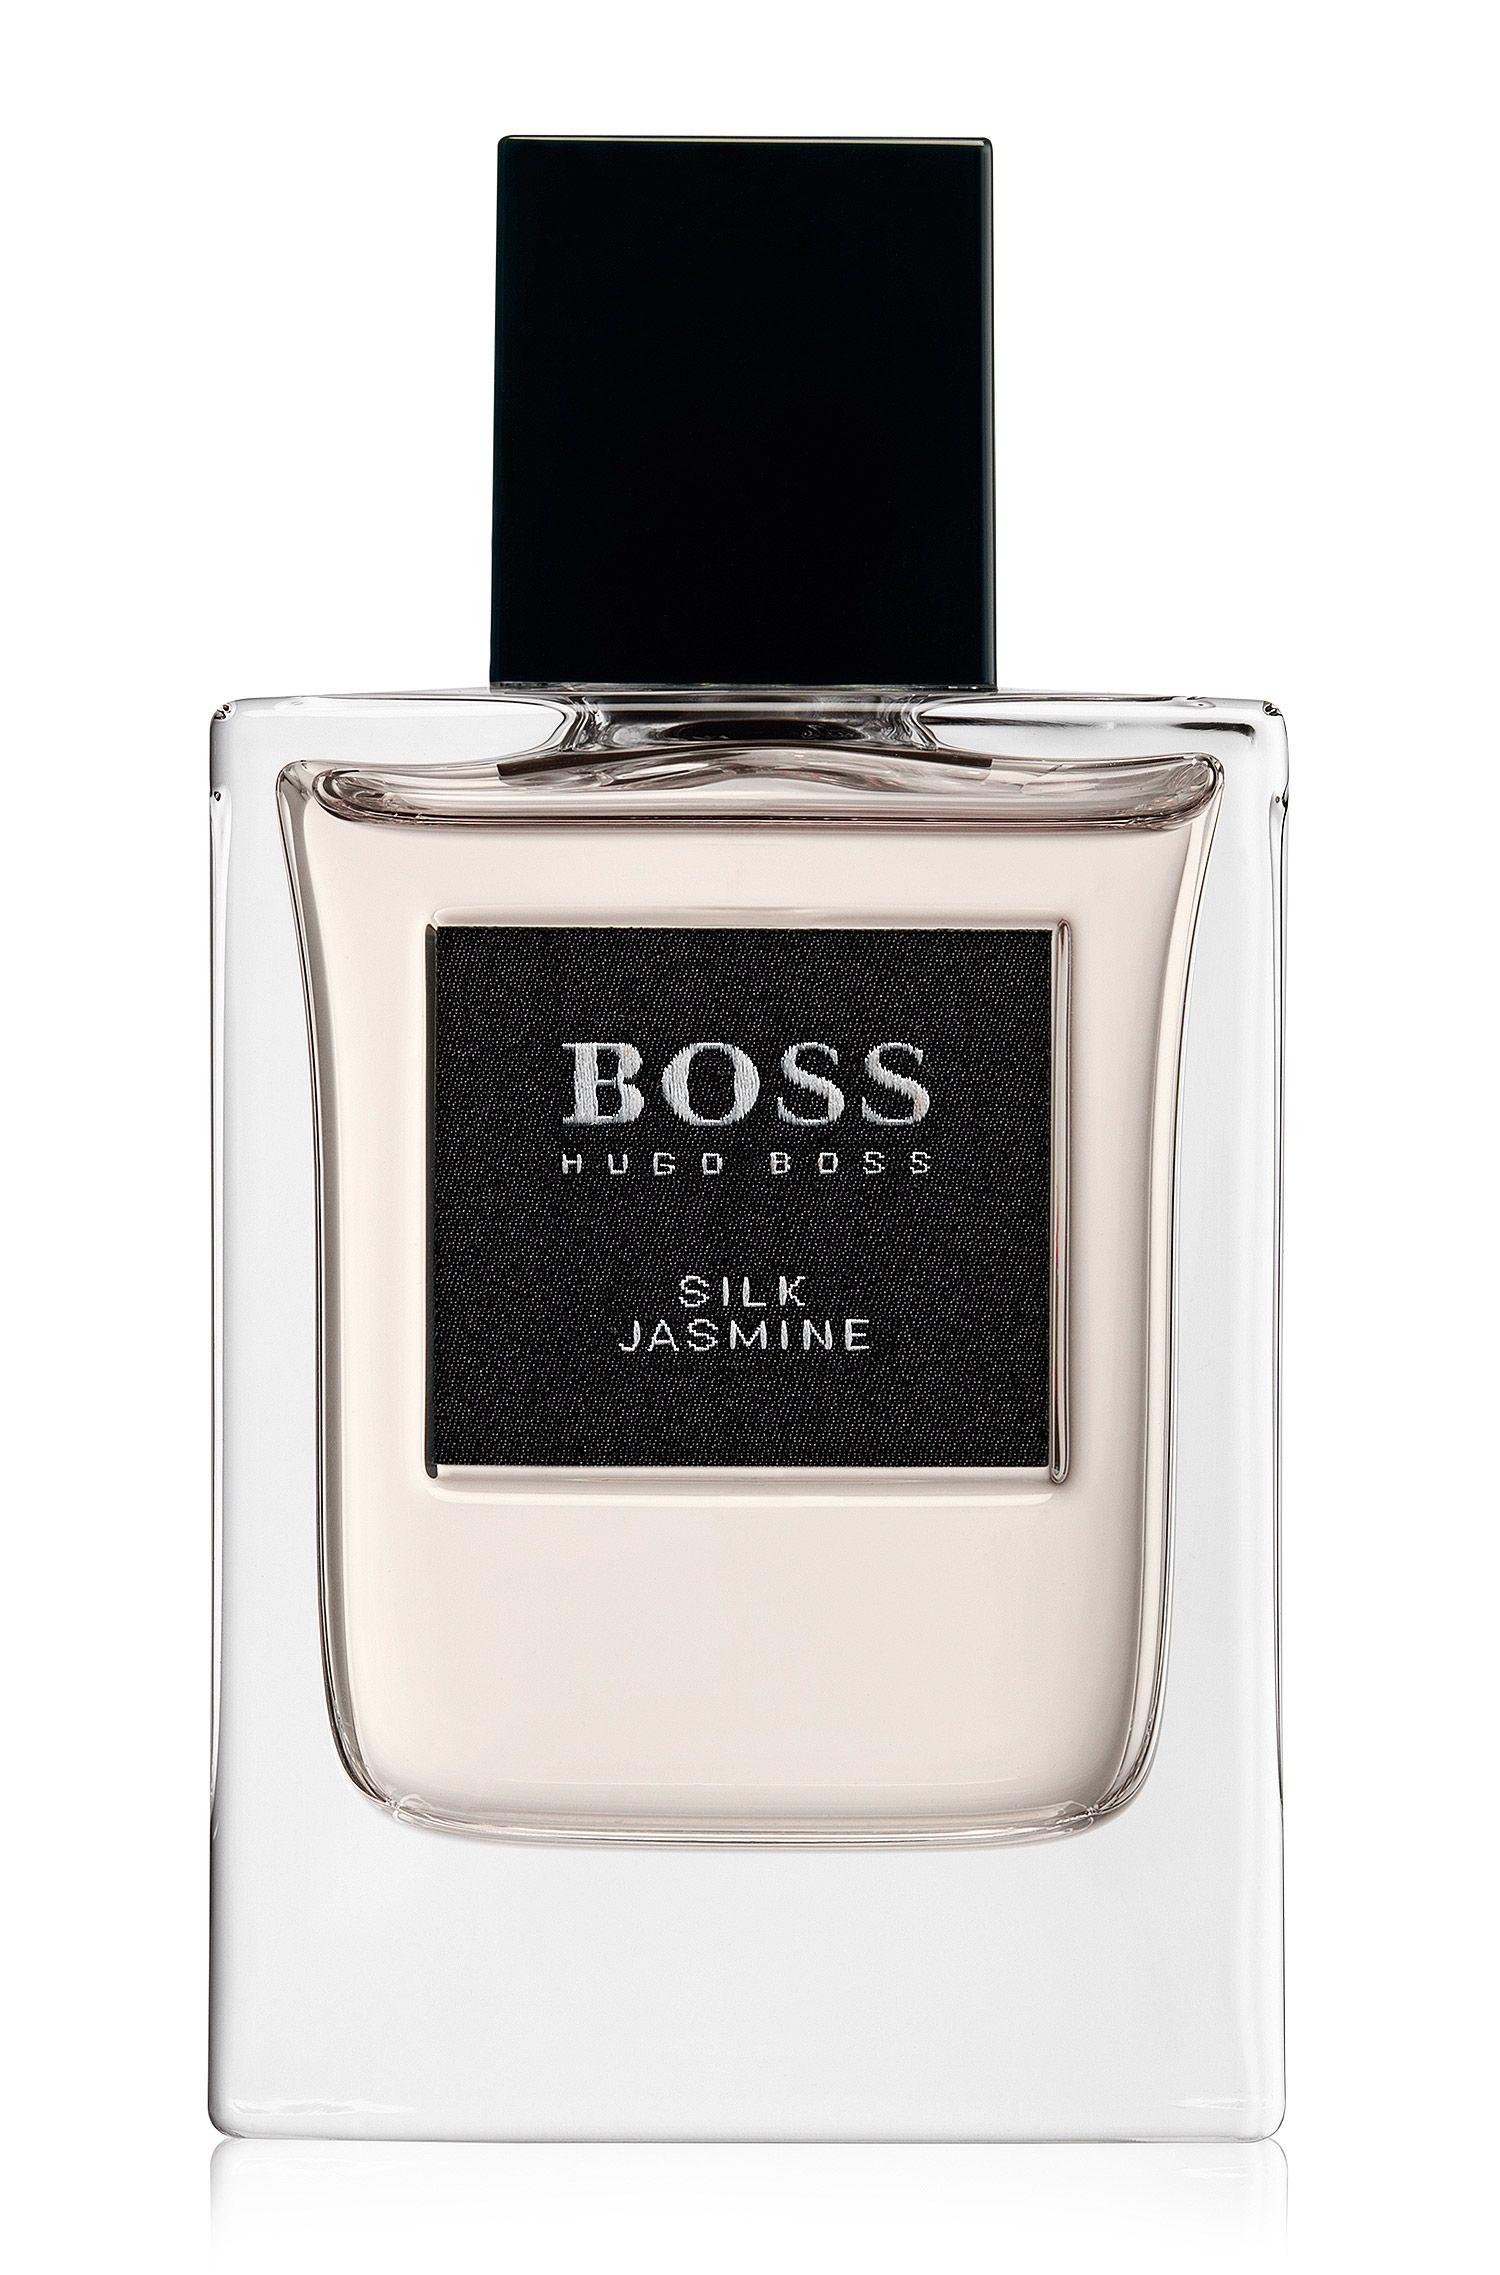 BOSS The Collection – Silk Jasmine Eau de Parfum